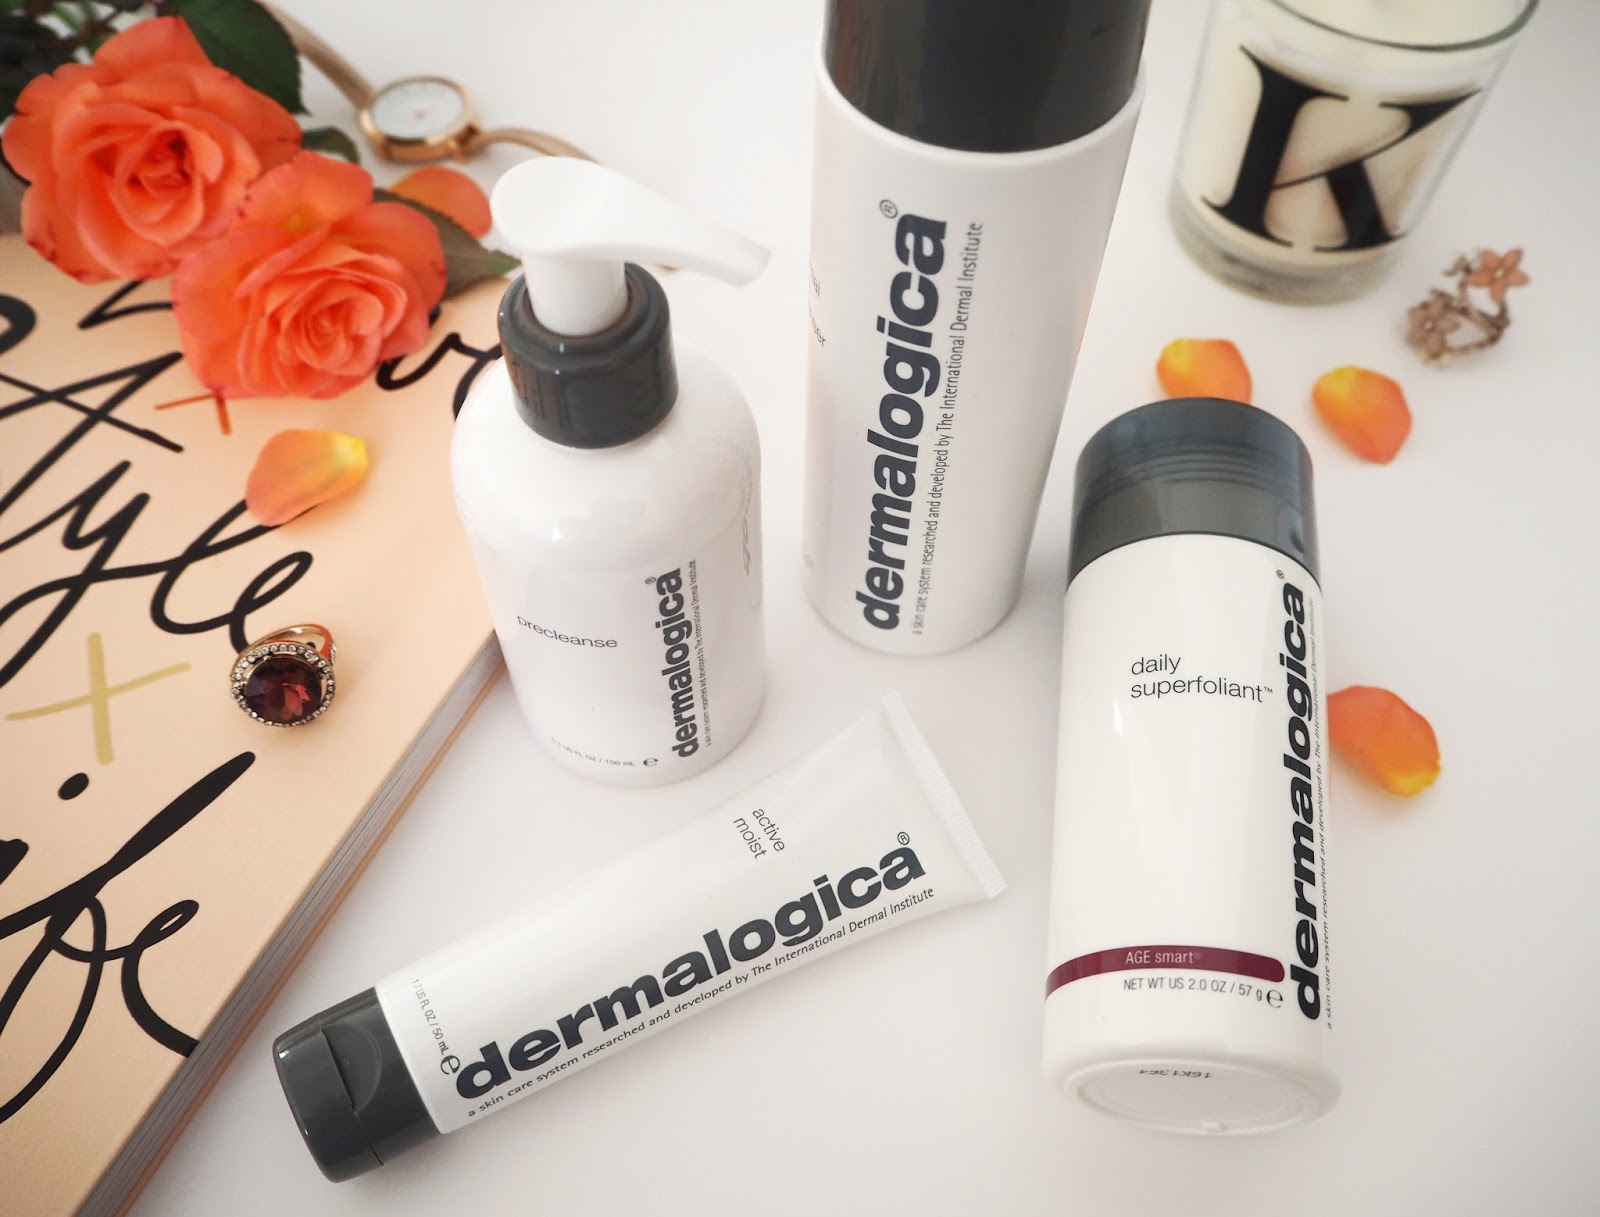 Dermalogica Face Mapping Skin Analysis, Beauty Blogger, UK Blogger, Skincare Review, Dermalogica Skincare Products, Preen Me, My Face My Story